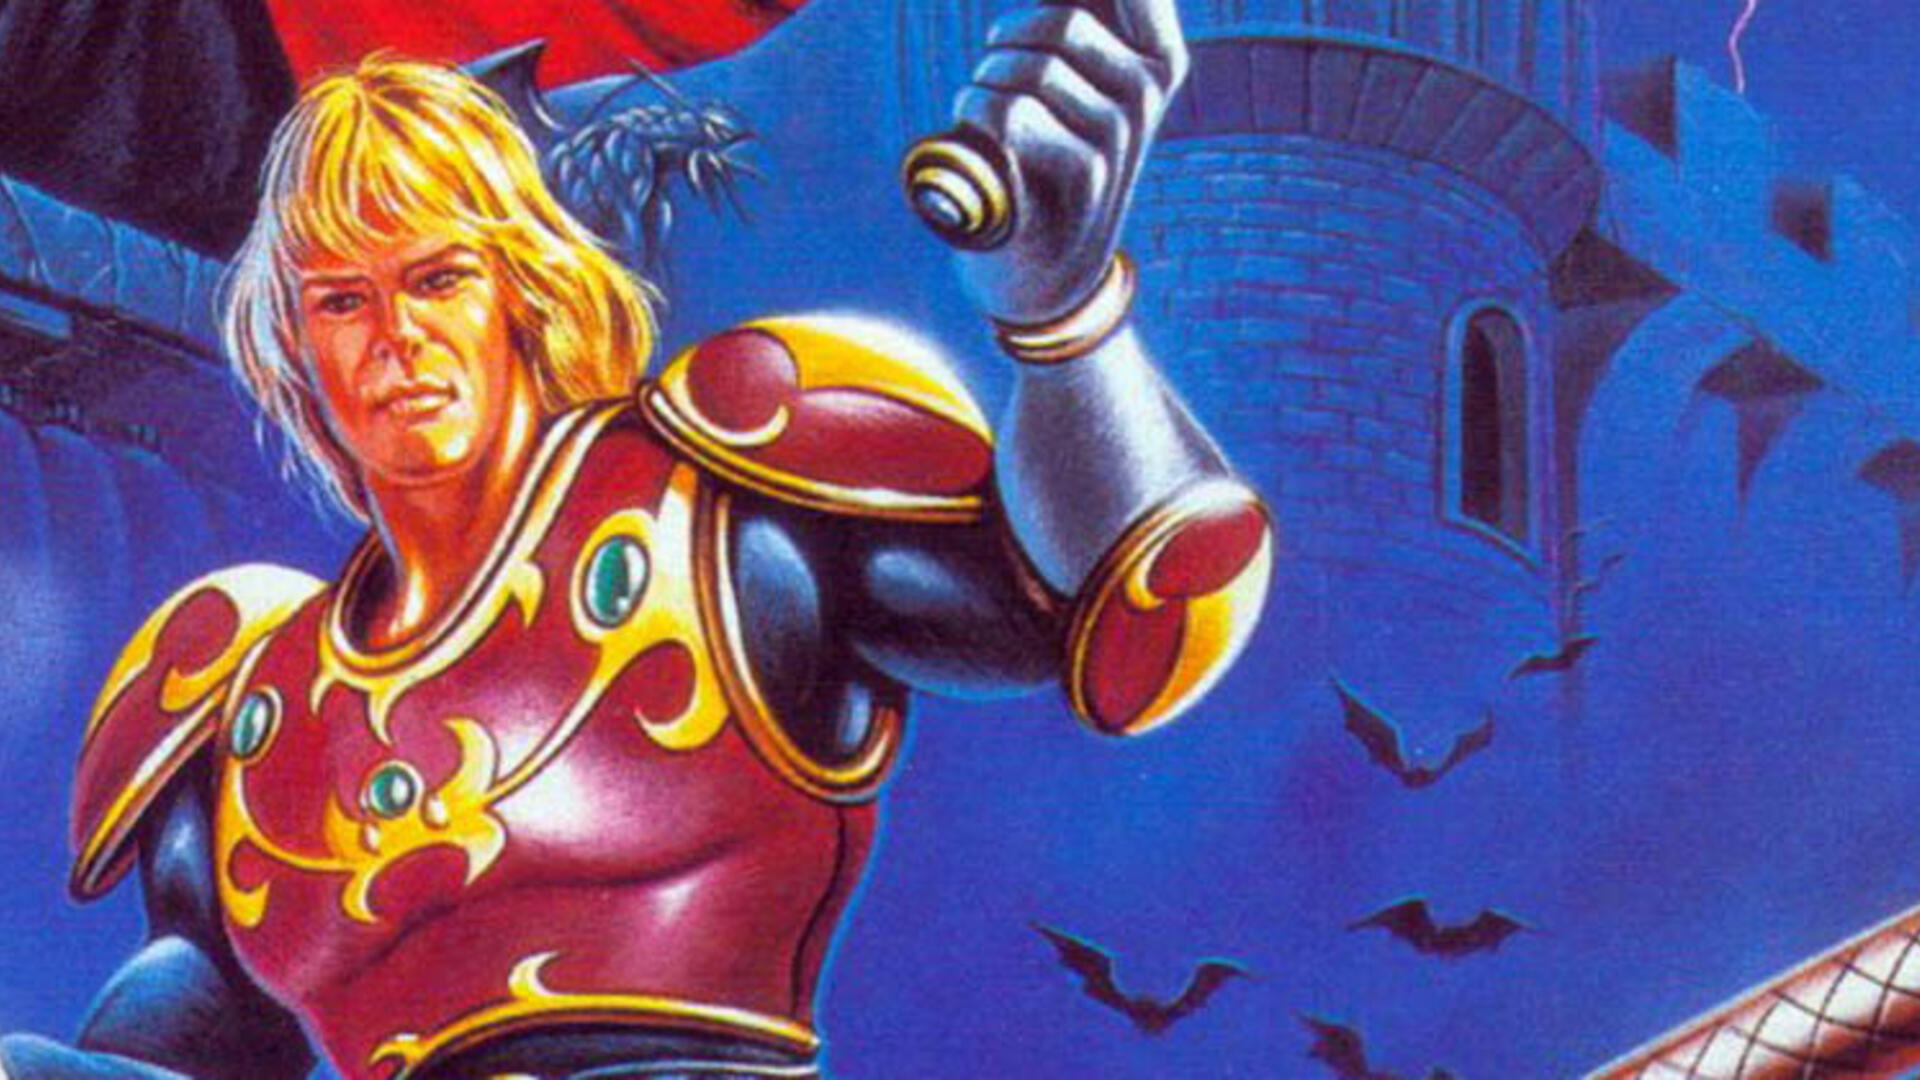 At 30, Castlevania May be Dead, But Its Influence Lingers Beyond The Grave